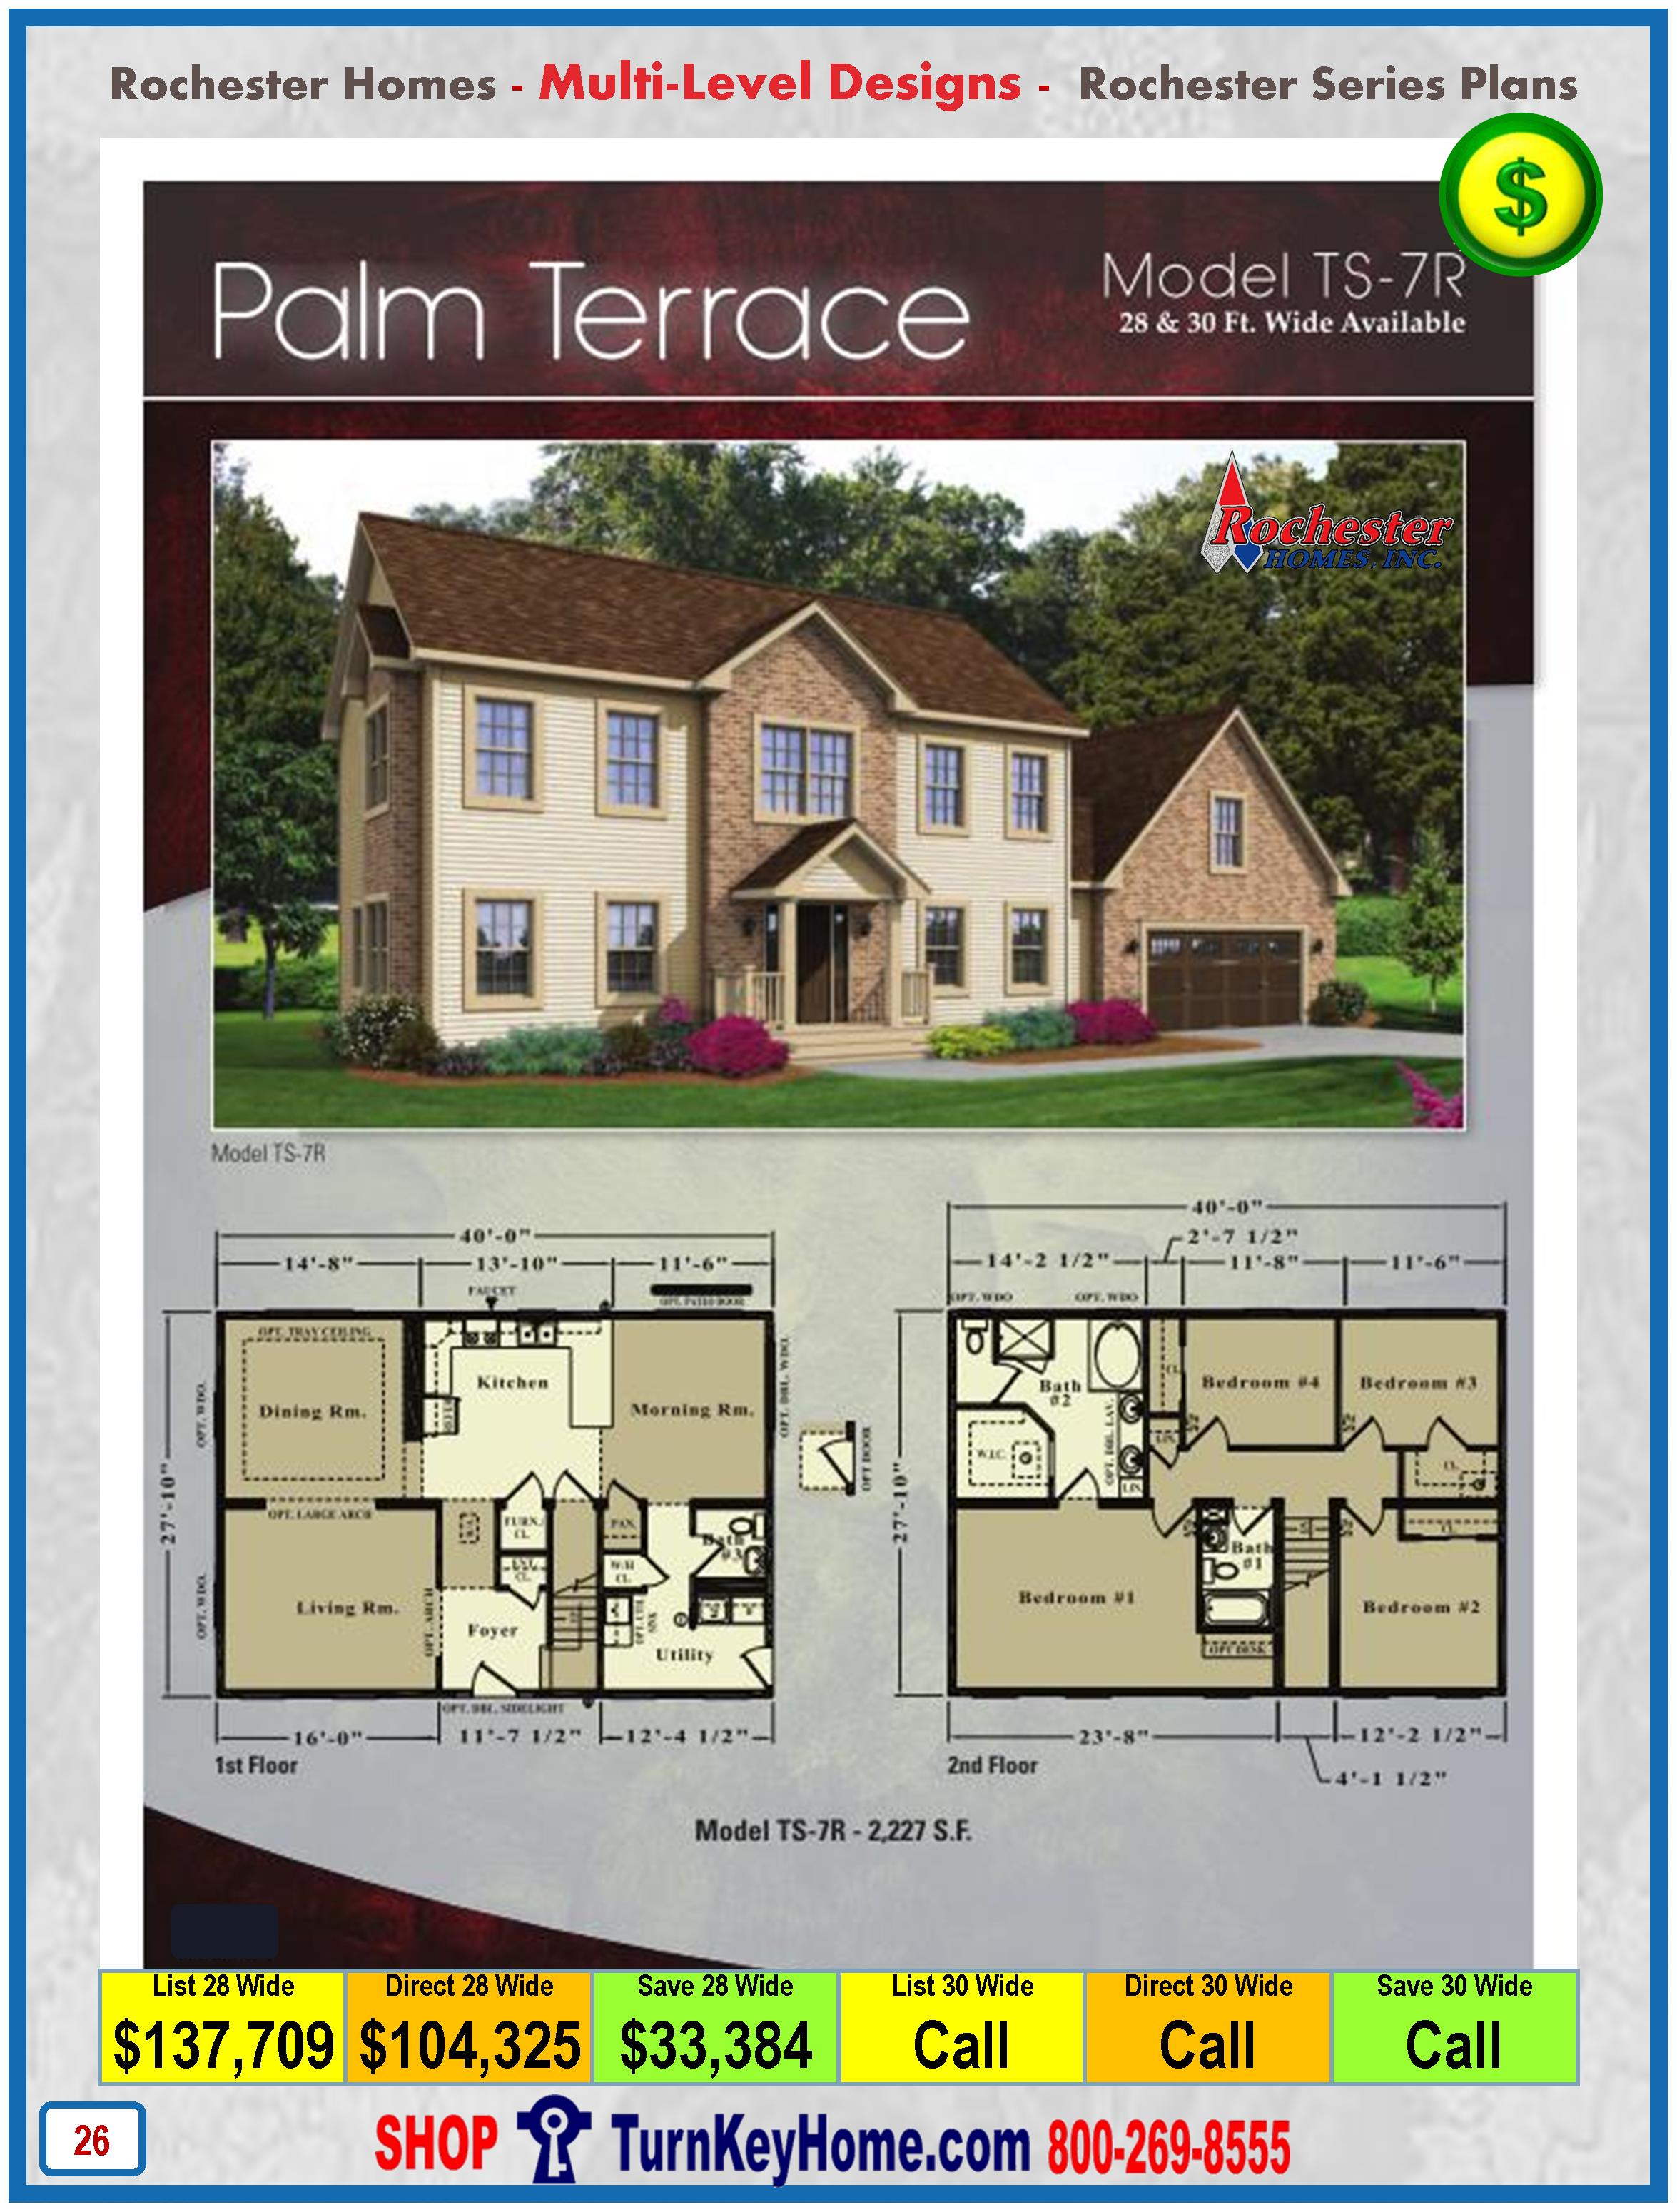 Modular.Home.Rochester.Homes.Two.Story.Palm.Terrace.TS7R.P26.1215